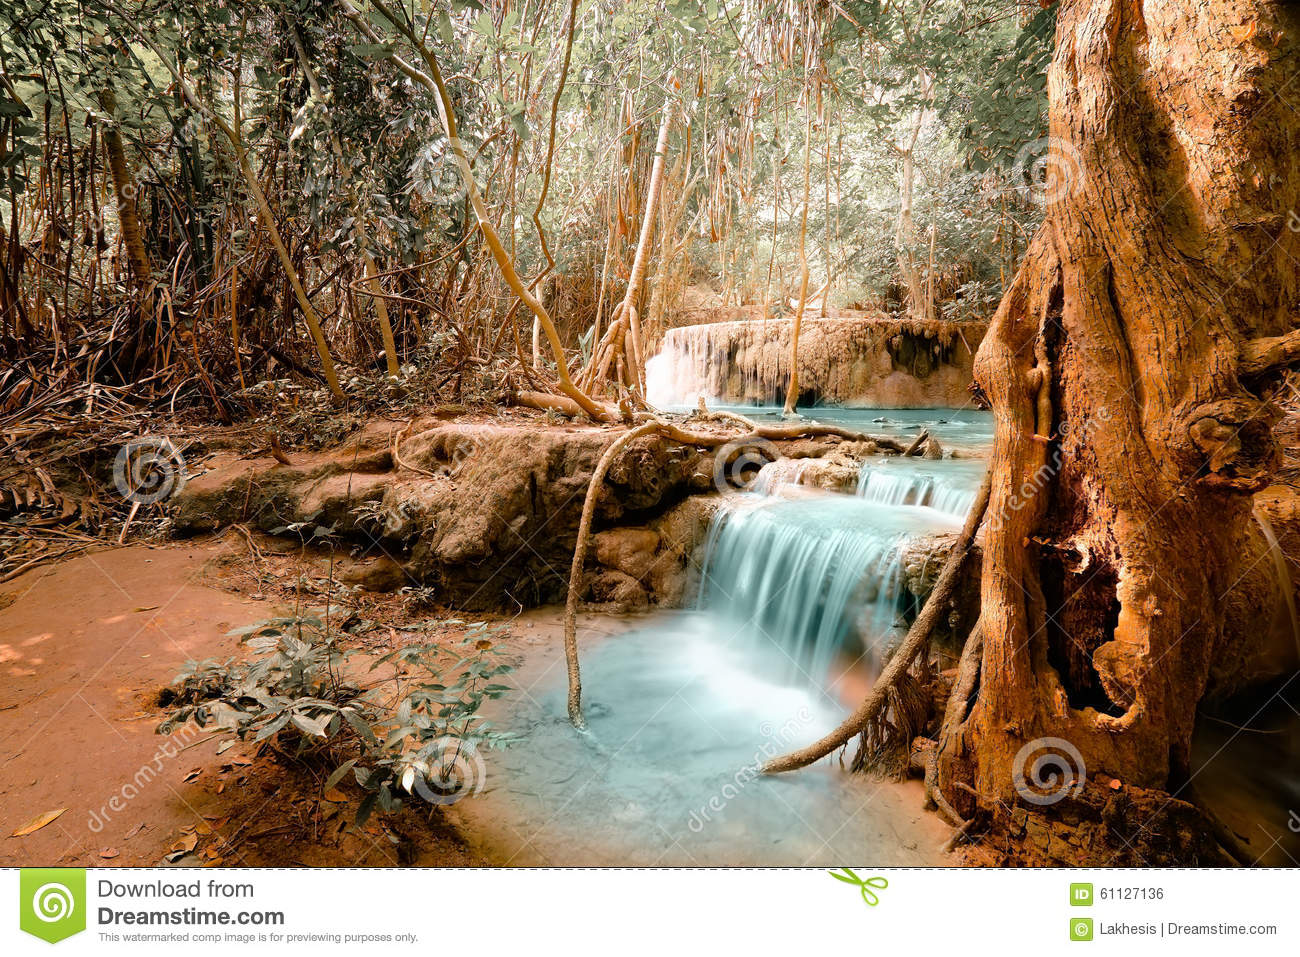 Fantasy jangle landscape with turquoise waterfall